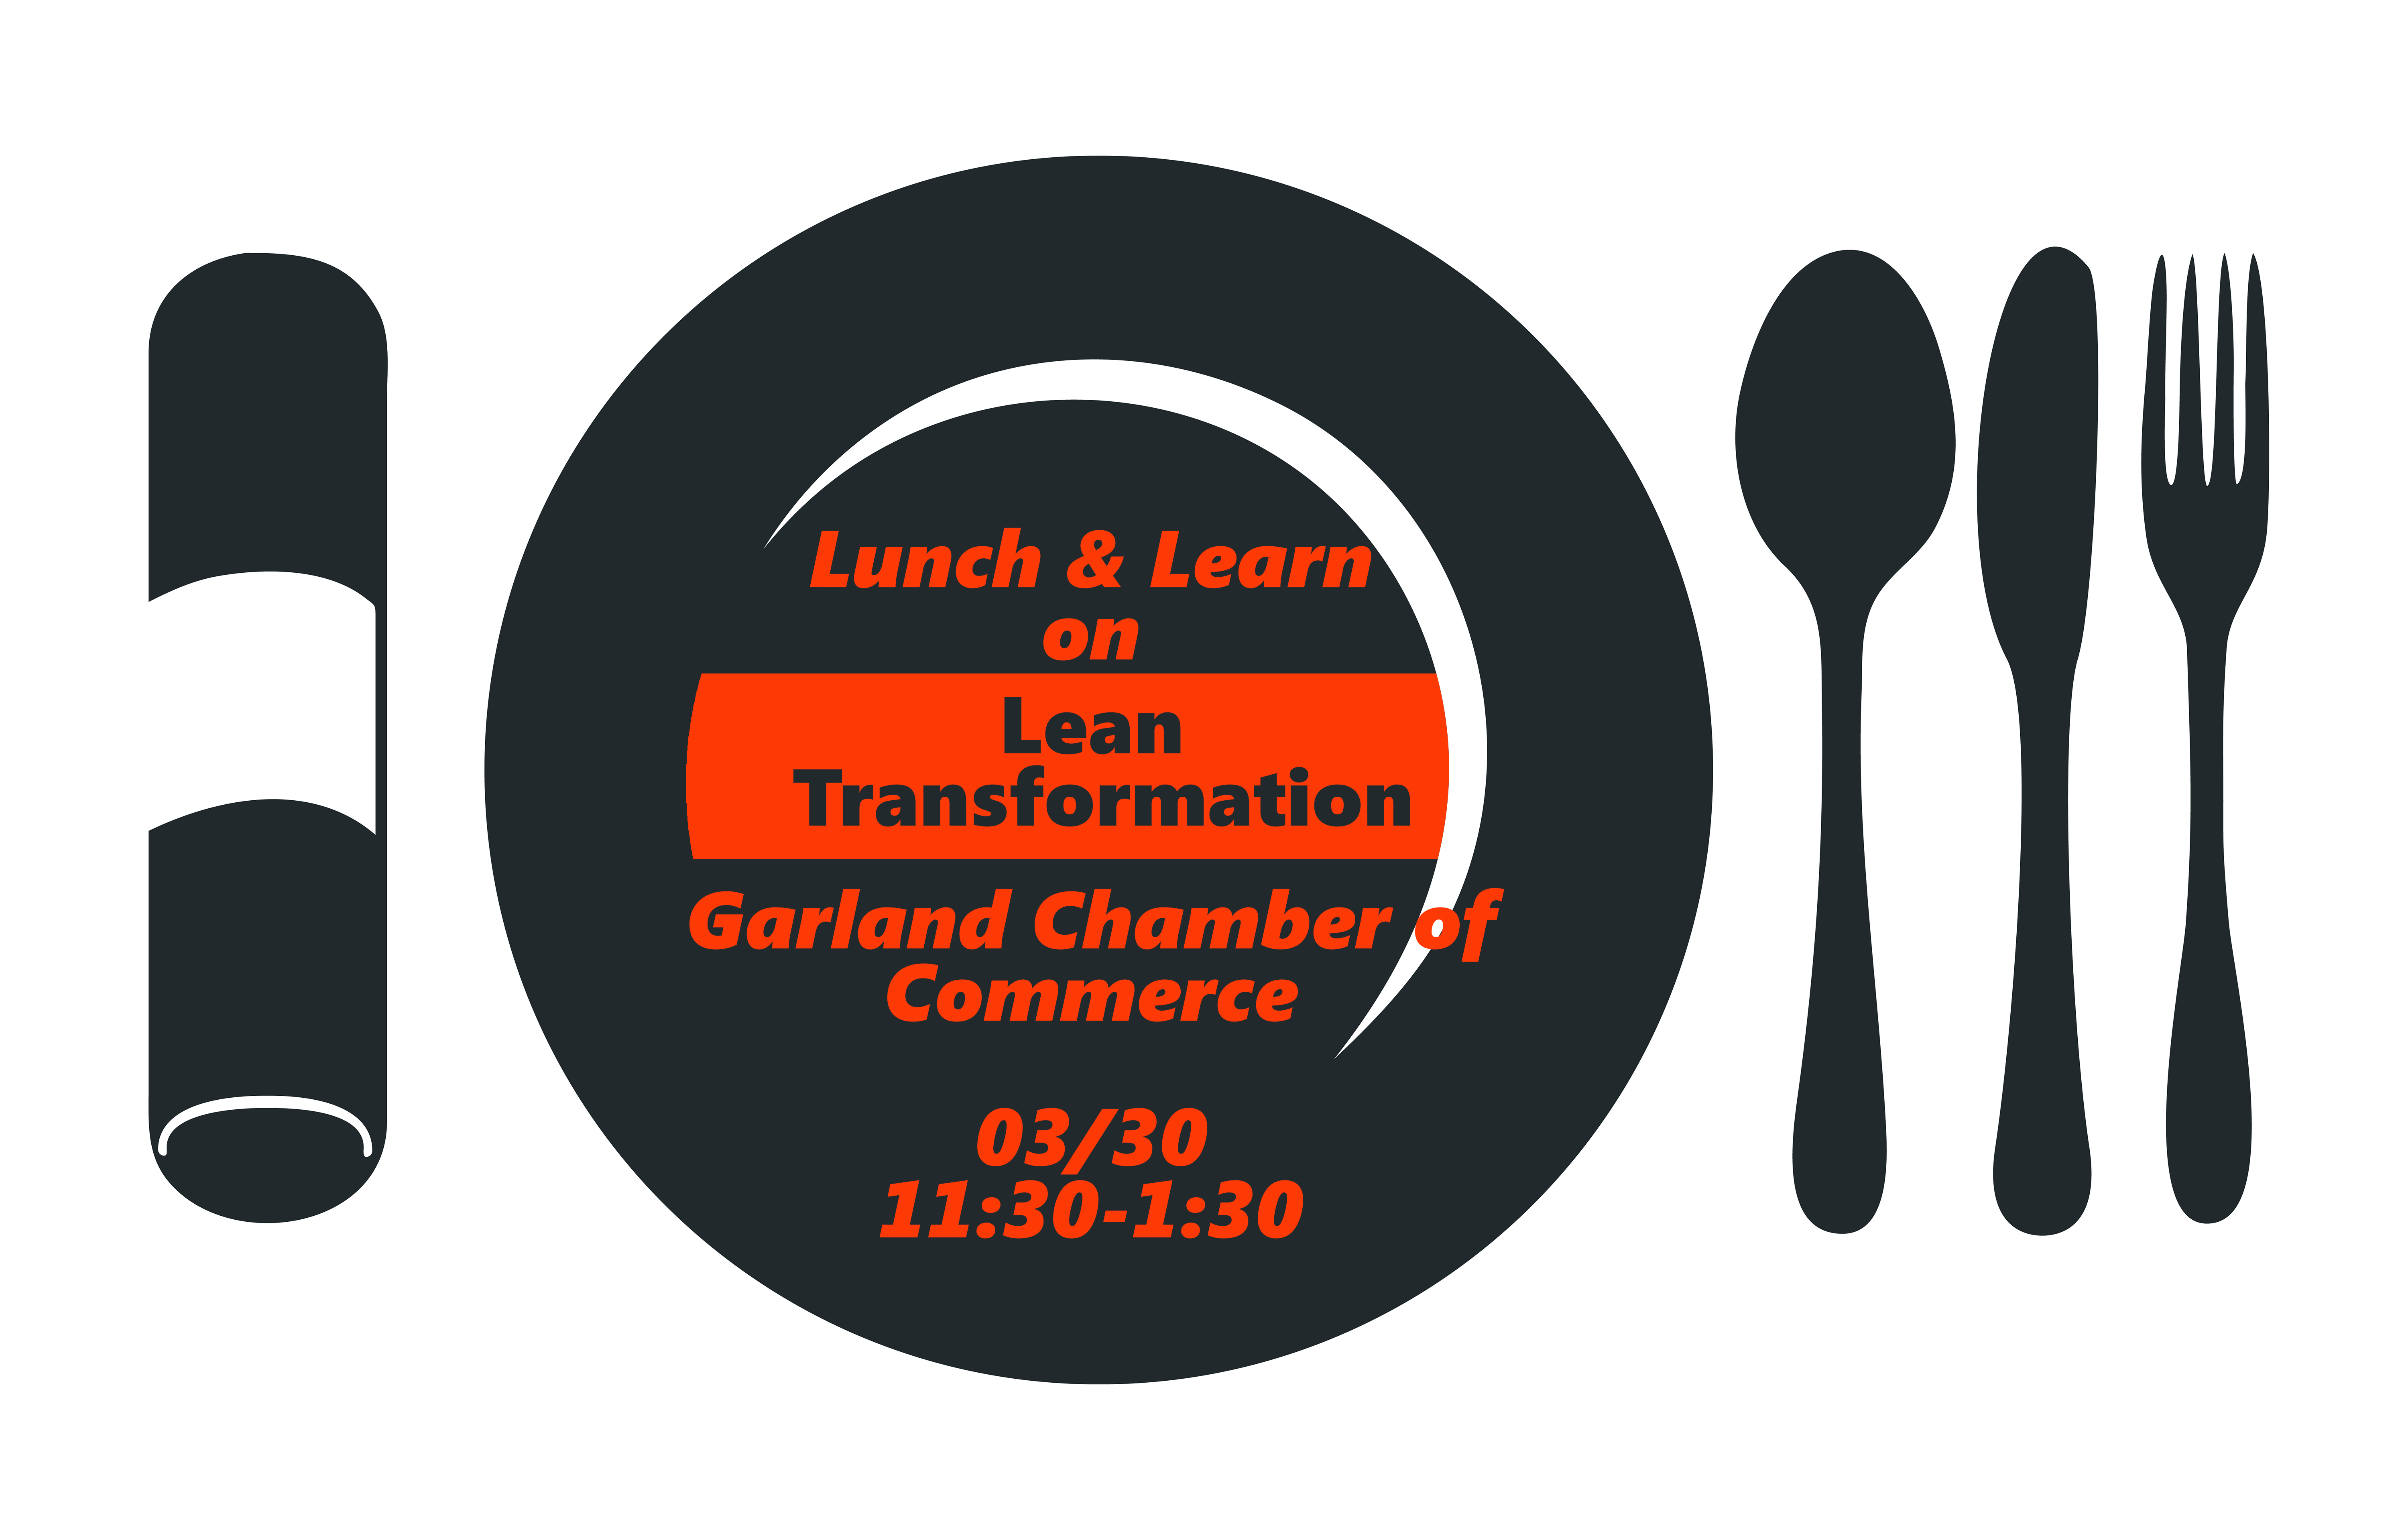 Attend Lunch & Learn - Manufacturing Lean Transformation Event